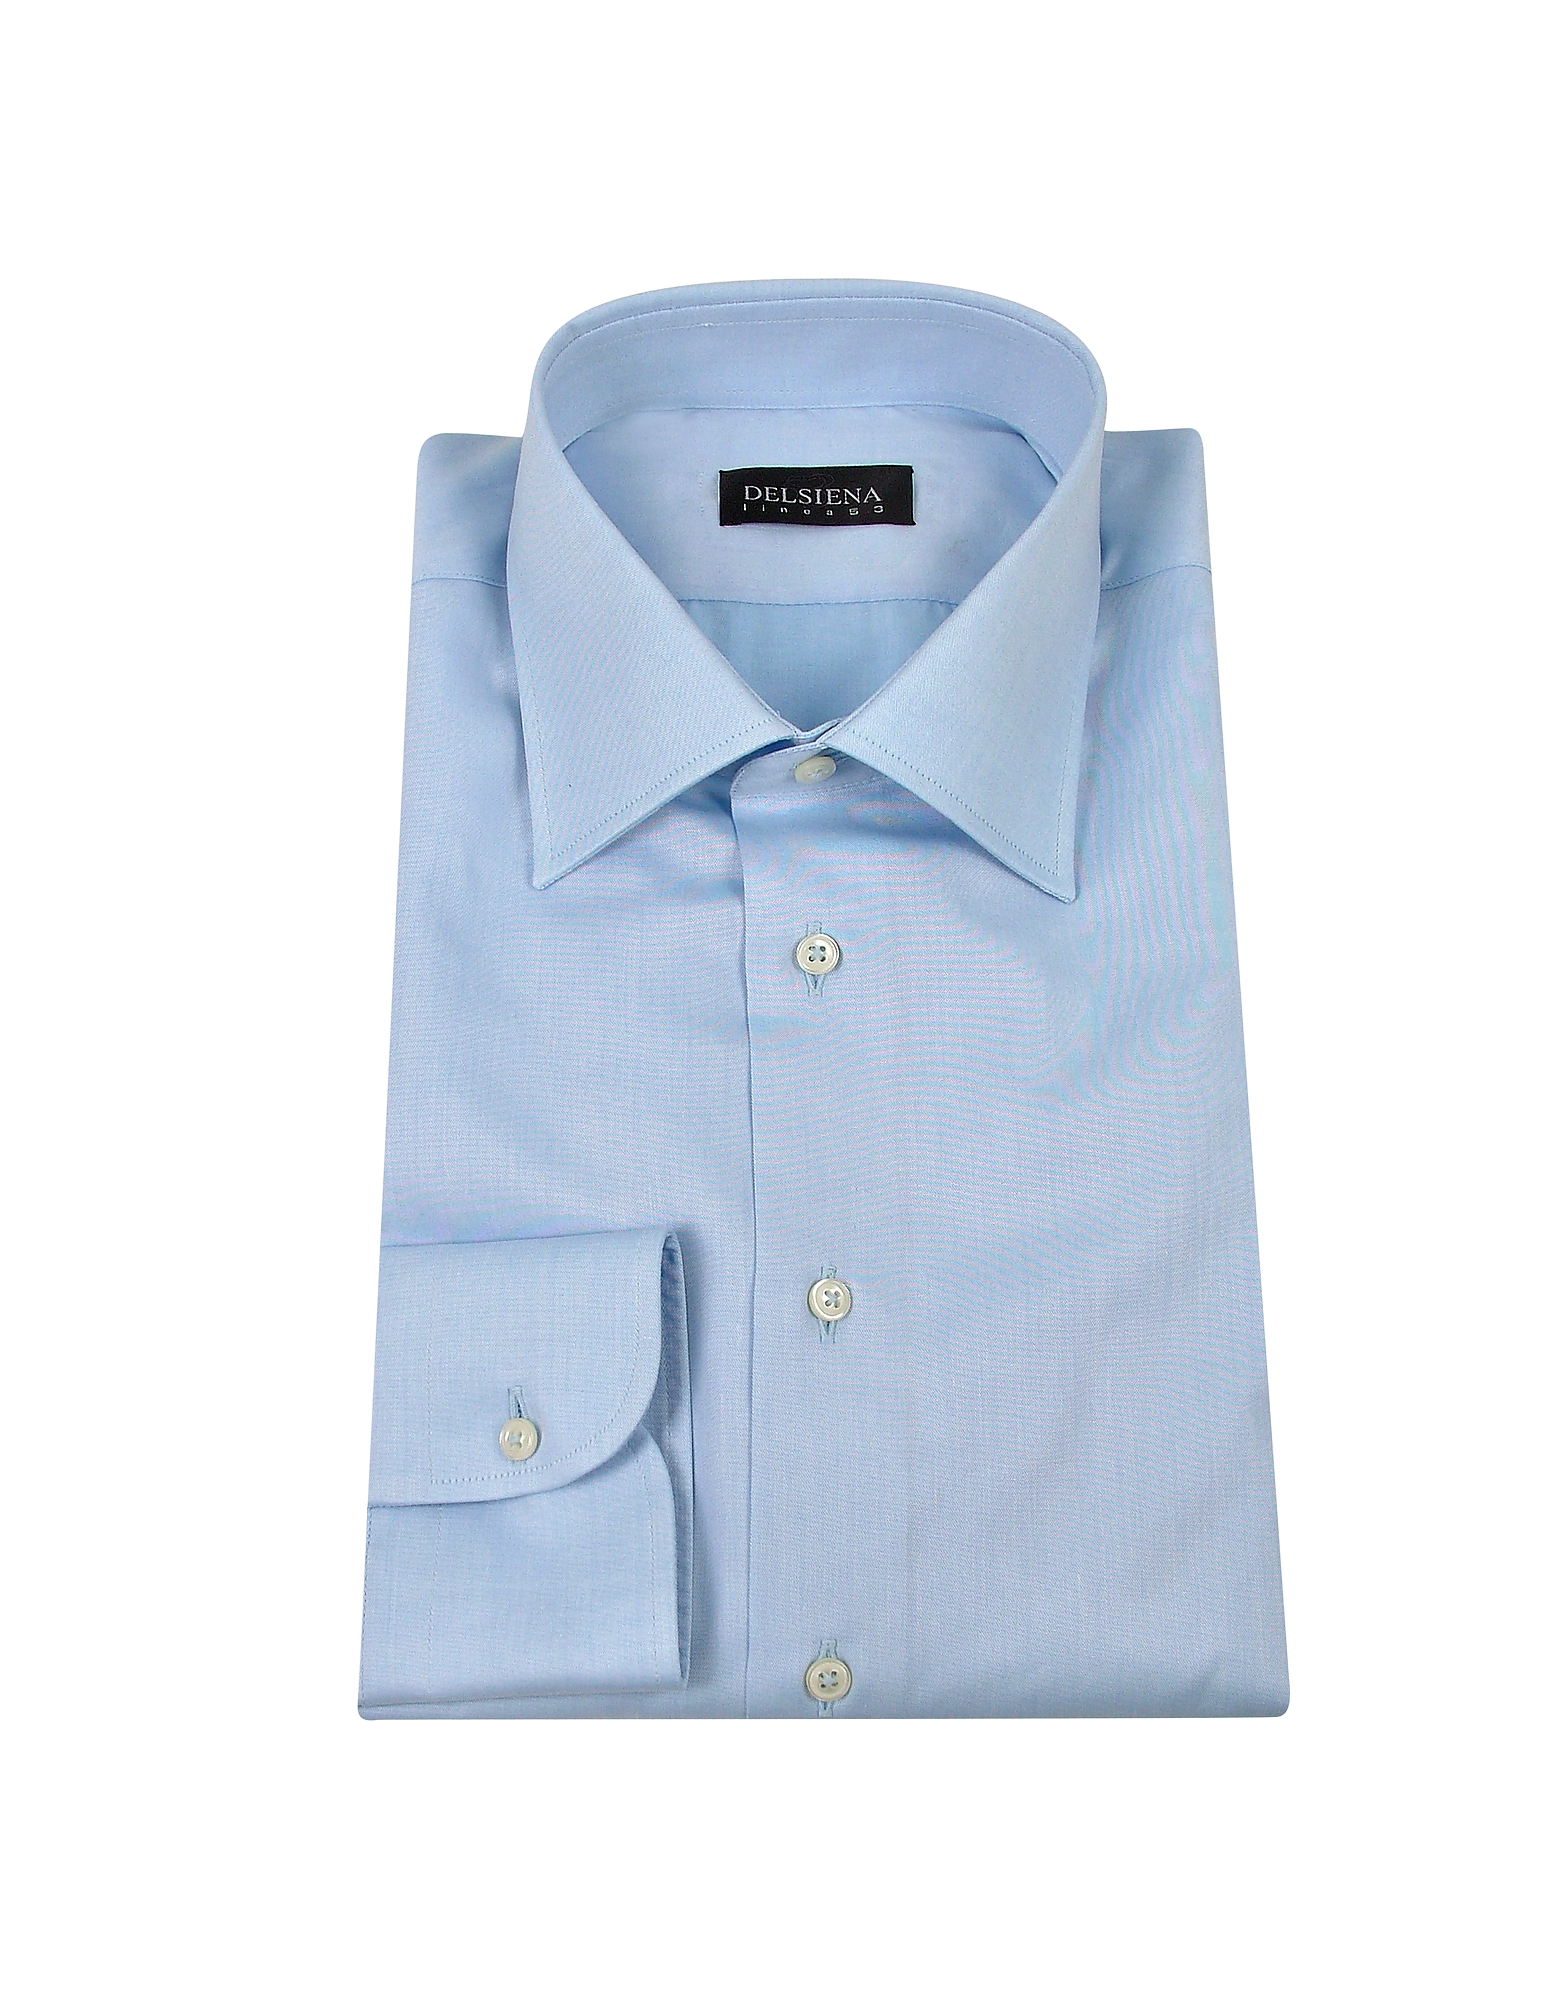 Handmade Light Blue Twill Cotton Italian Slim Dress Shirt от Forzieri.com INT